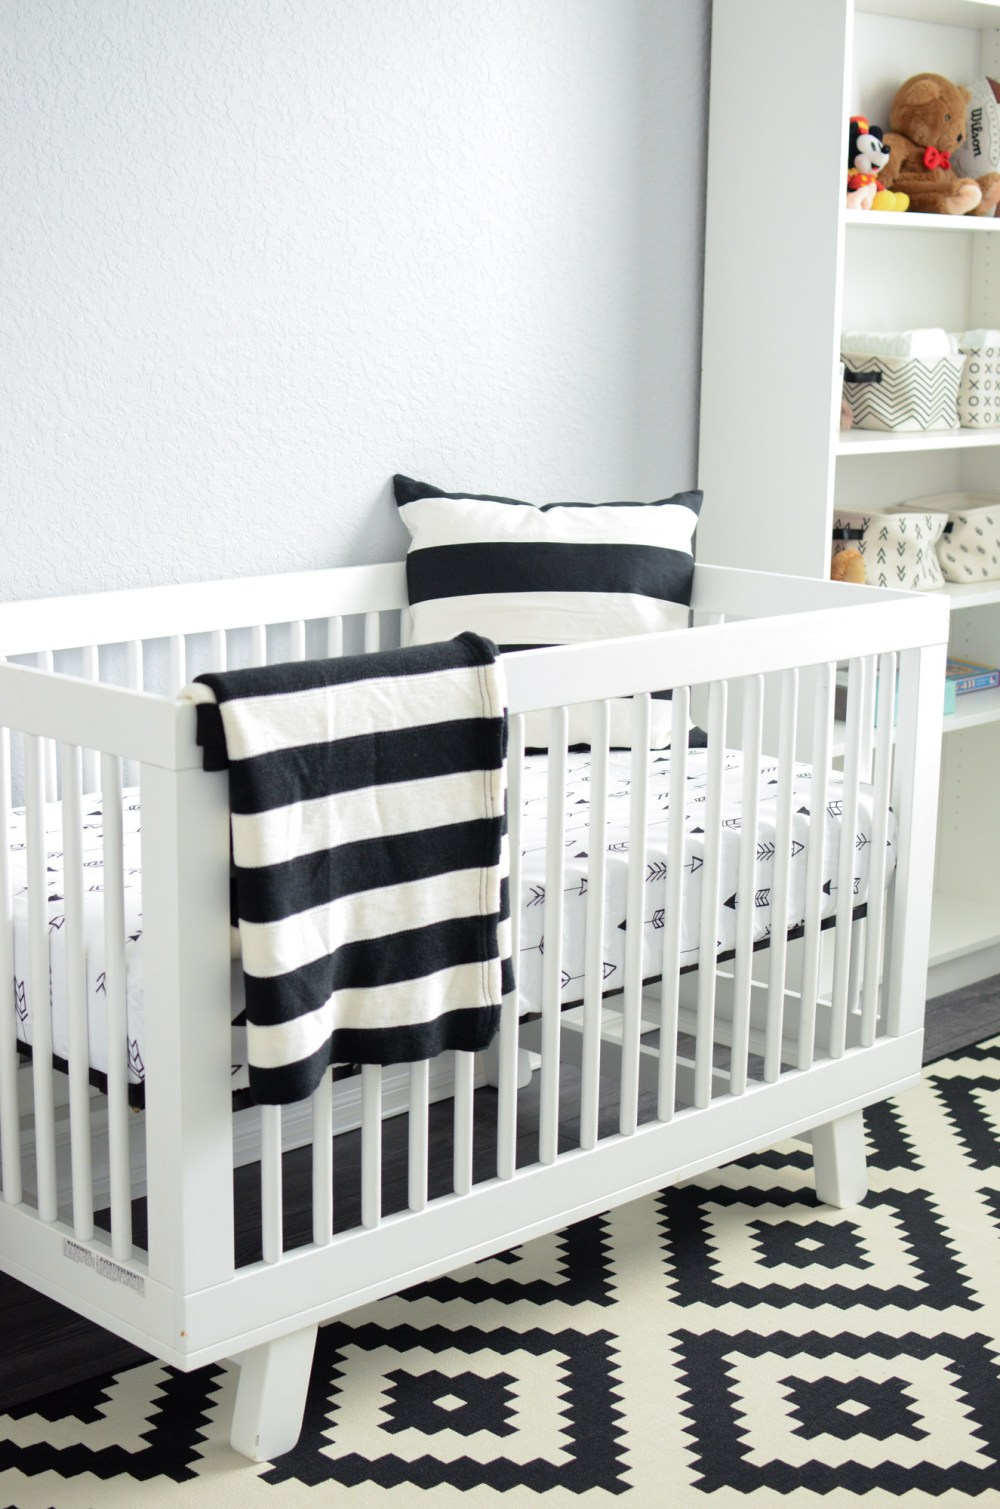 Babyletto Hudson Crib, Black and White nursery